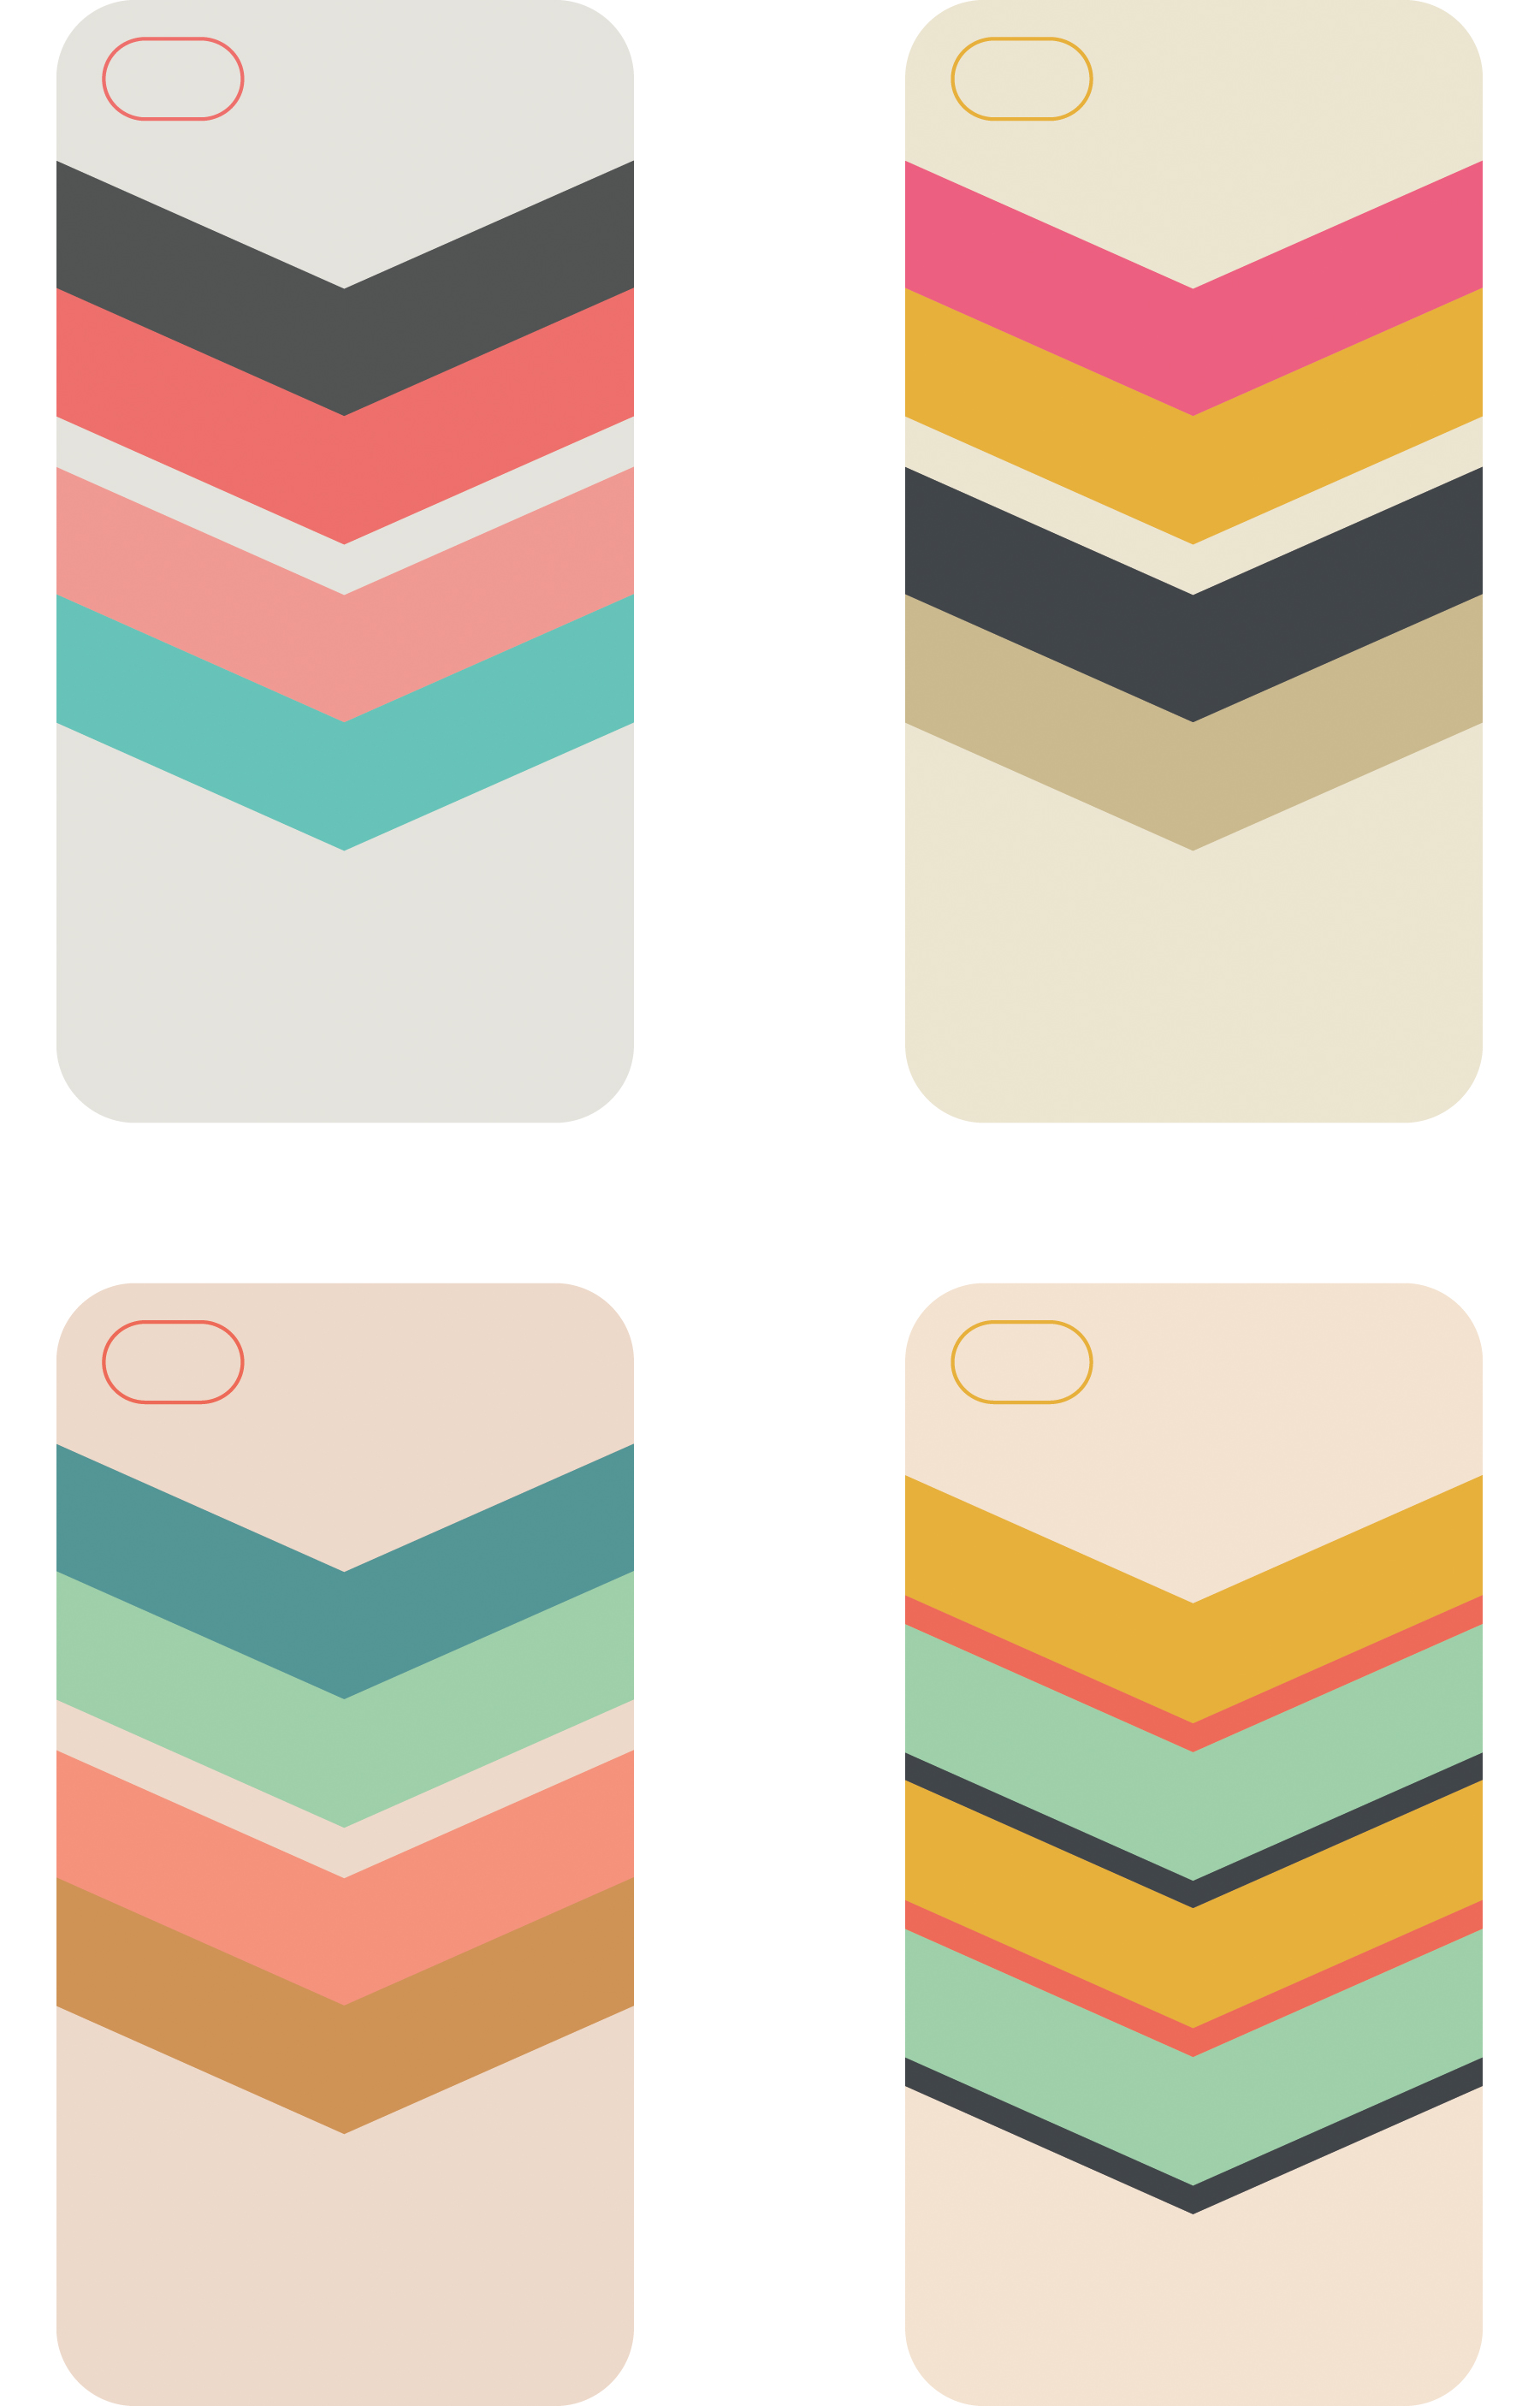 download iphone case wallpaper gallery